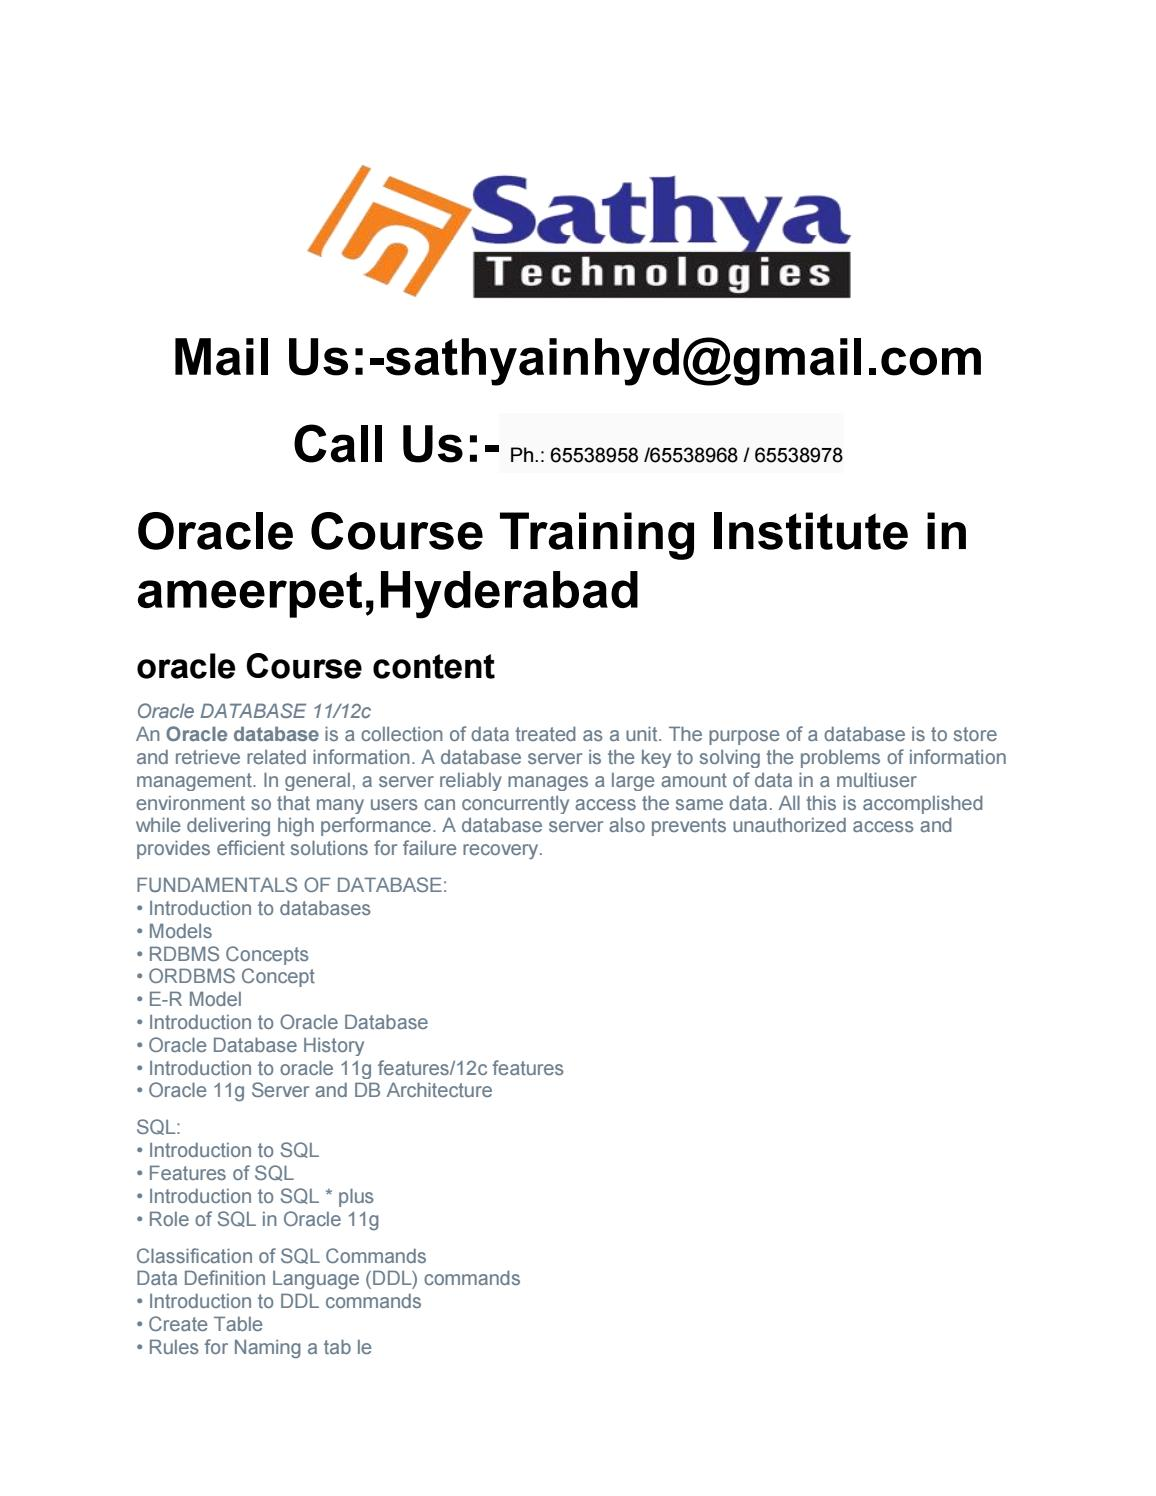 Oracle Training In Hyderabad by sathya tech - issuu